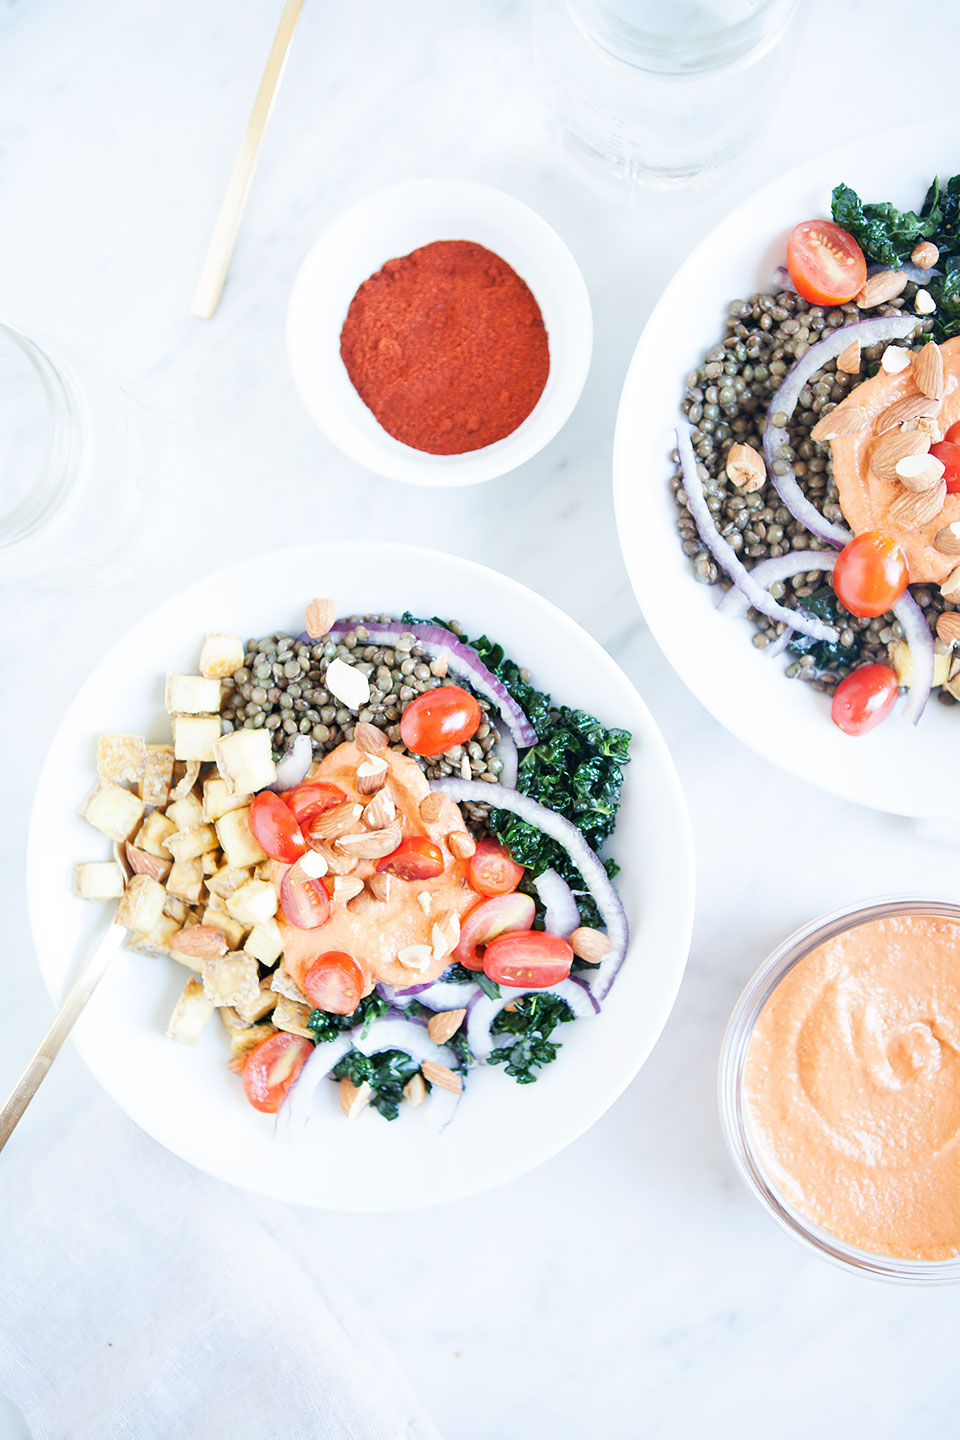 Lentil Tofu Bowls with Smoky Romesco Sauce | Gluten-free and Vegan. | Loveleaf Co.